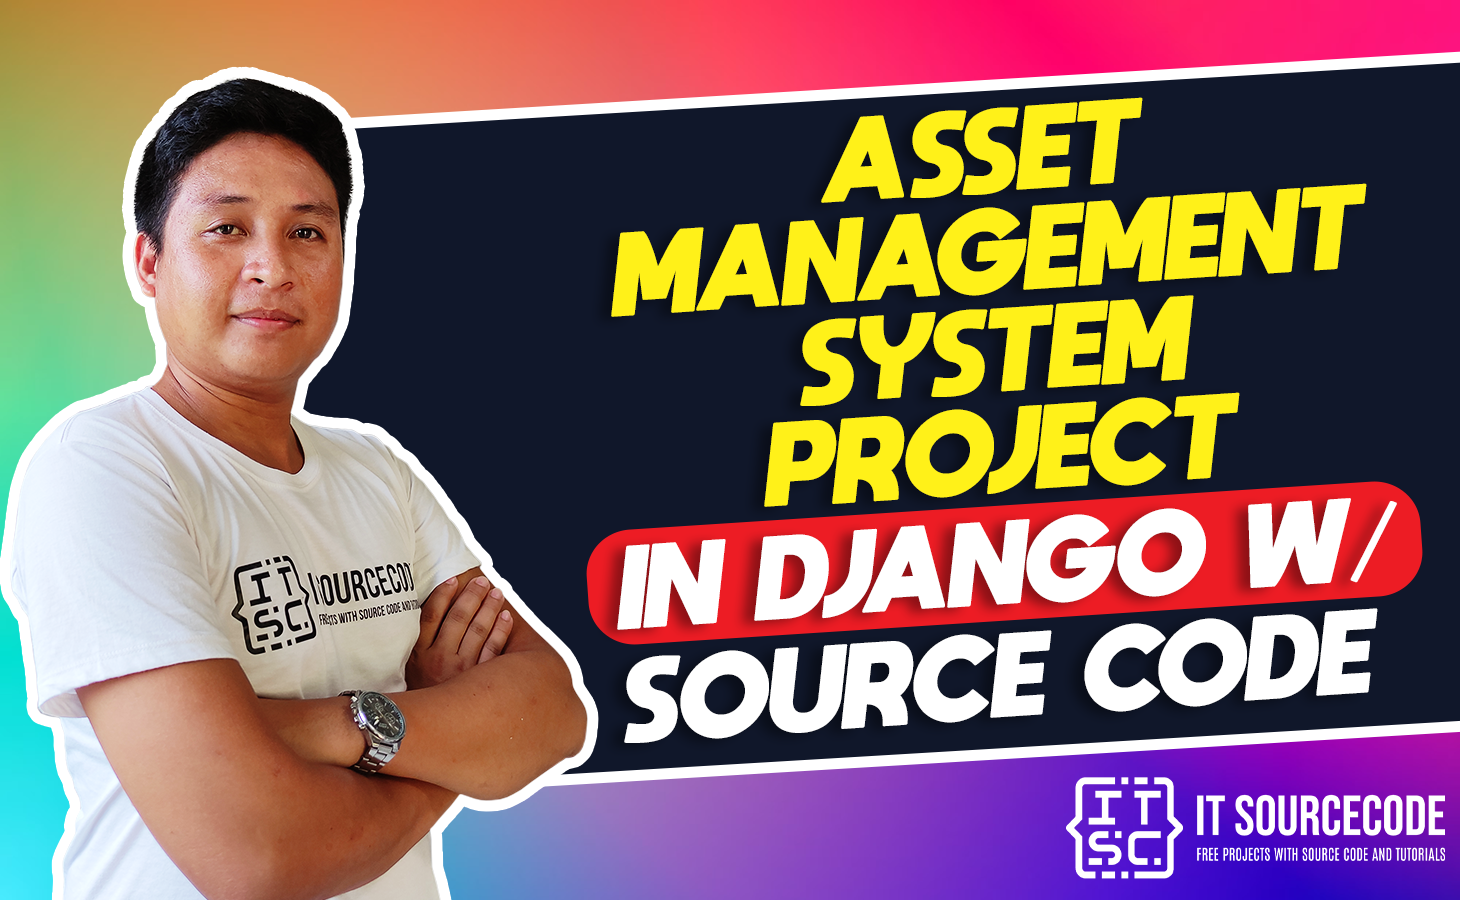 Asset management system project in django with source code